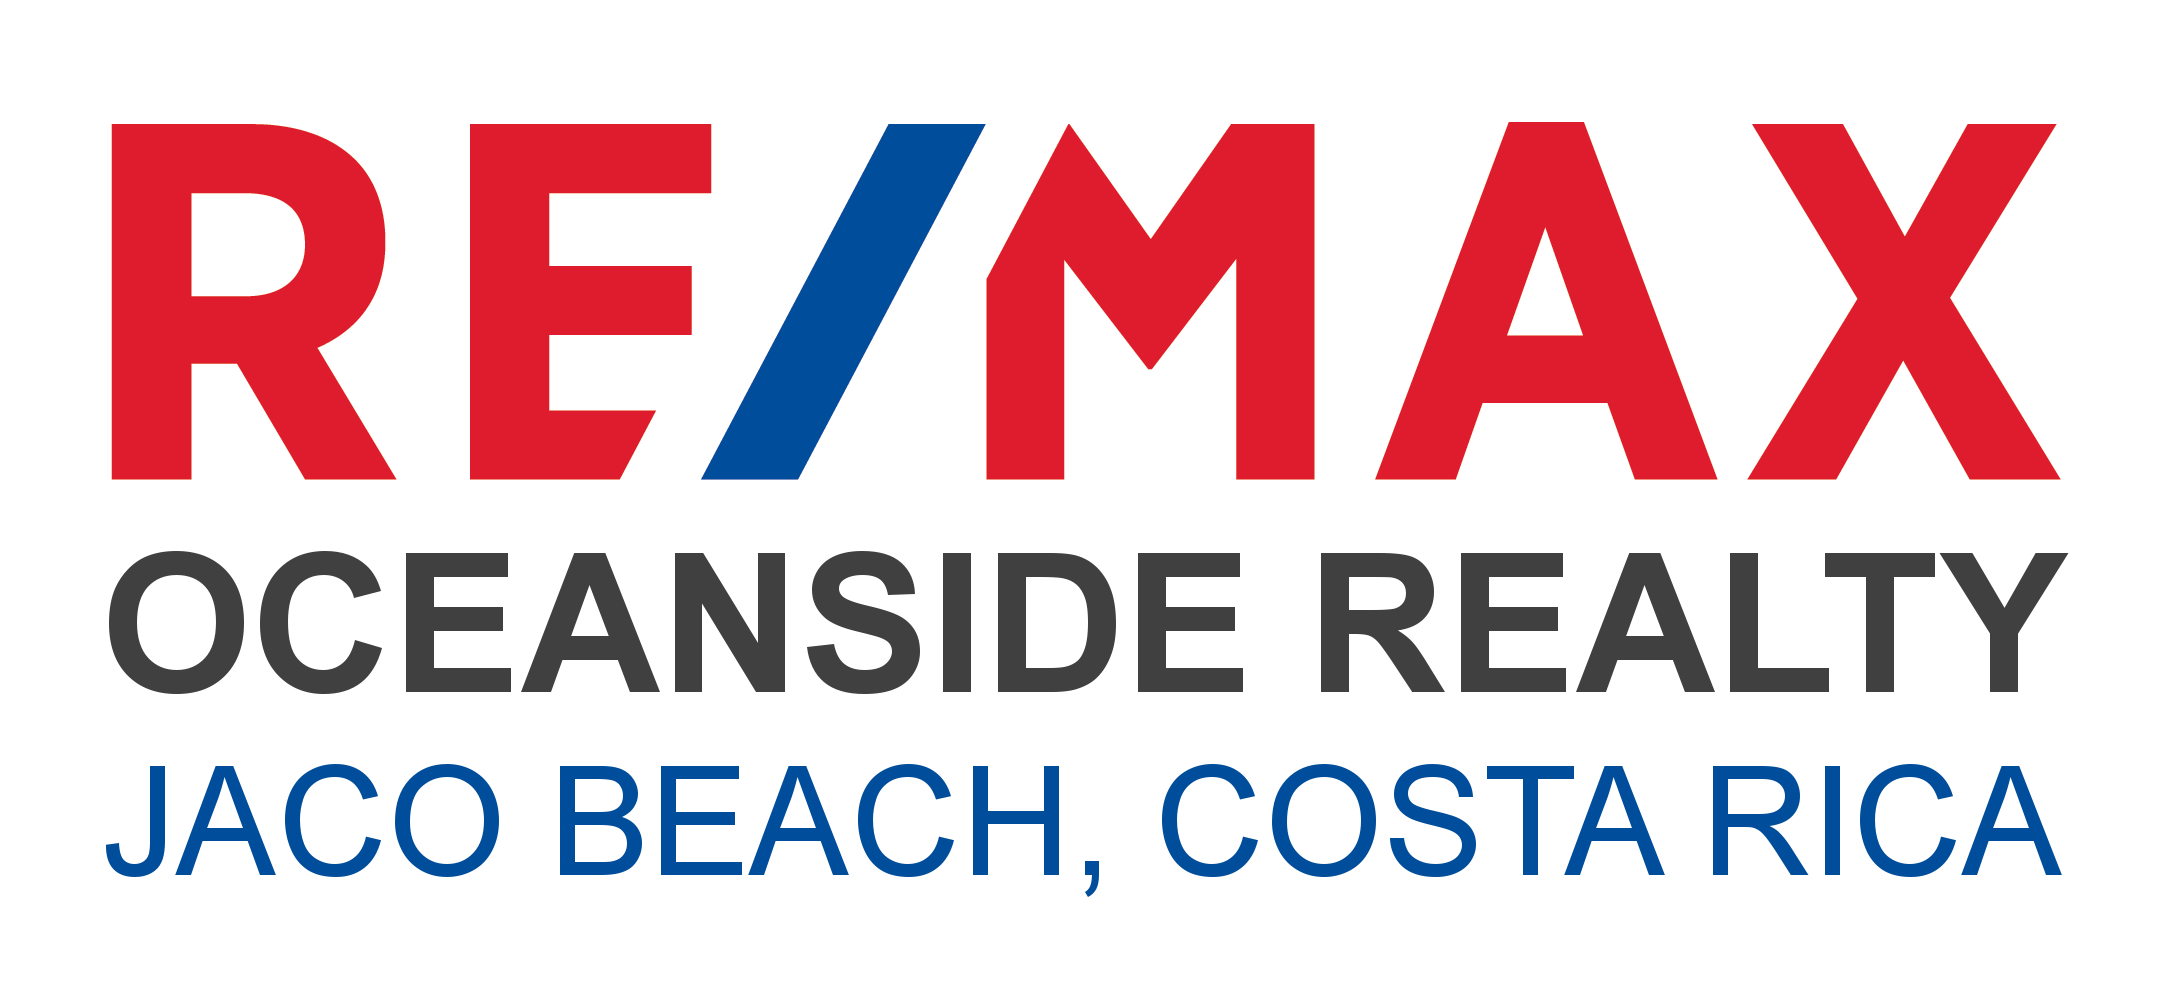 REMAX OCEANSIDE Realty Jaco Beach Costa Rica